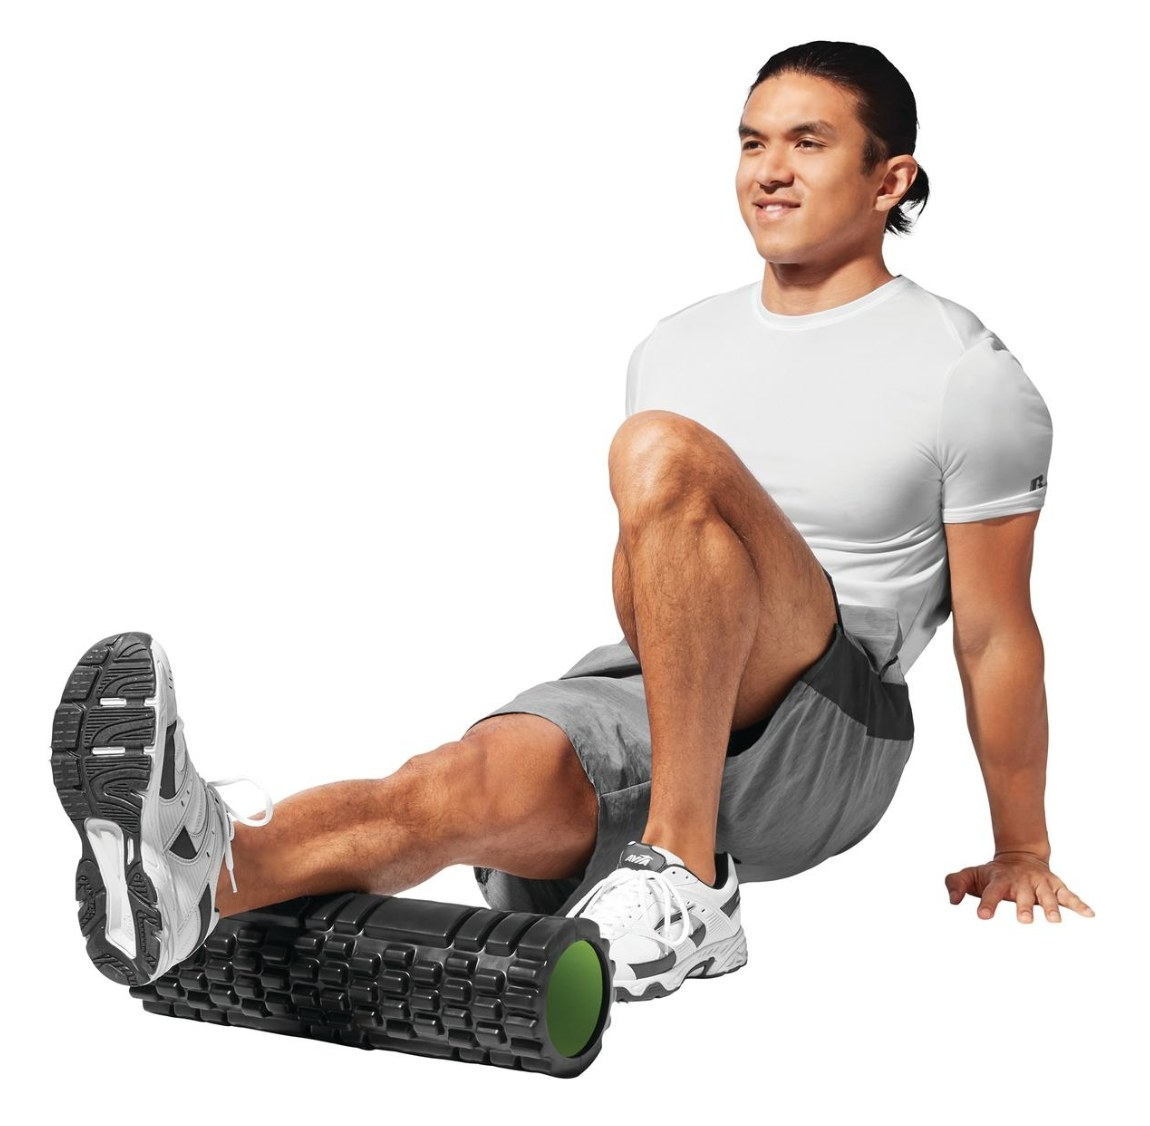 The massage roller in black and green